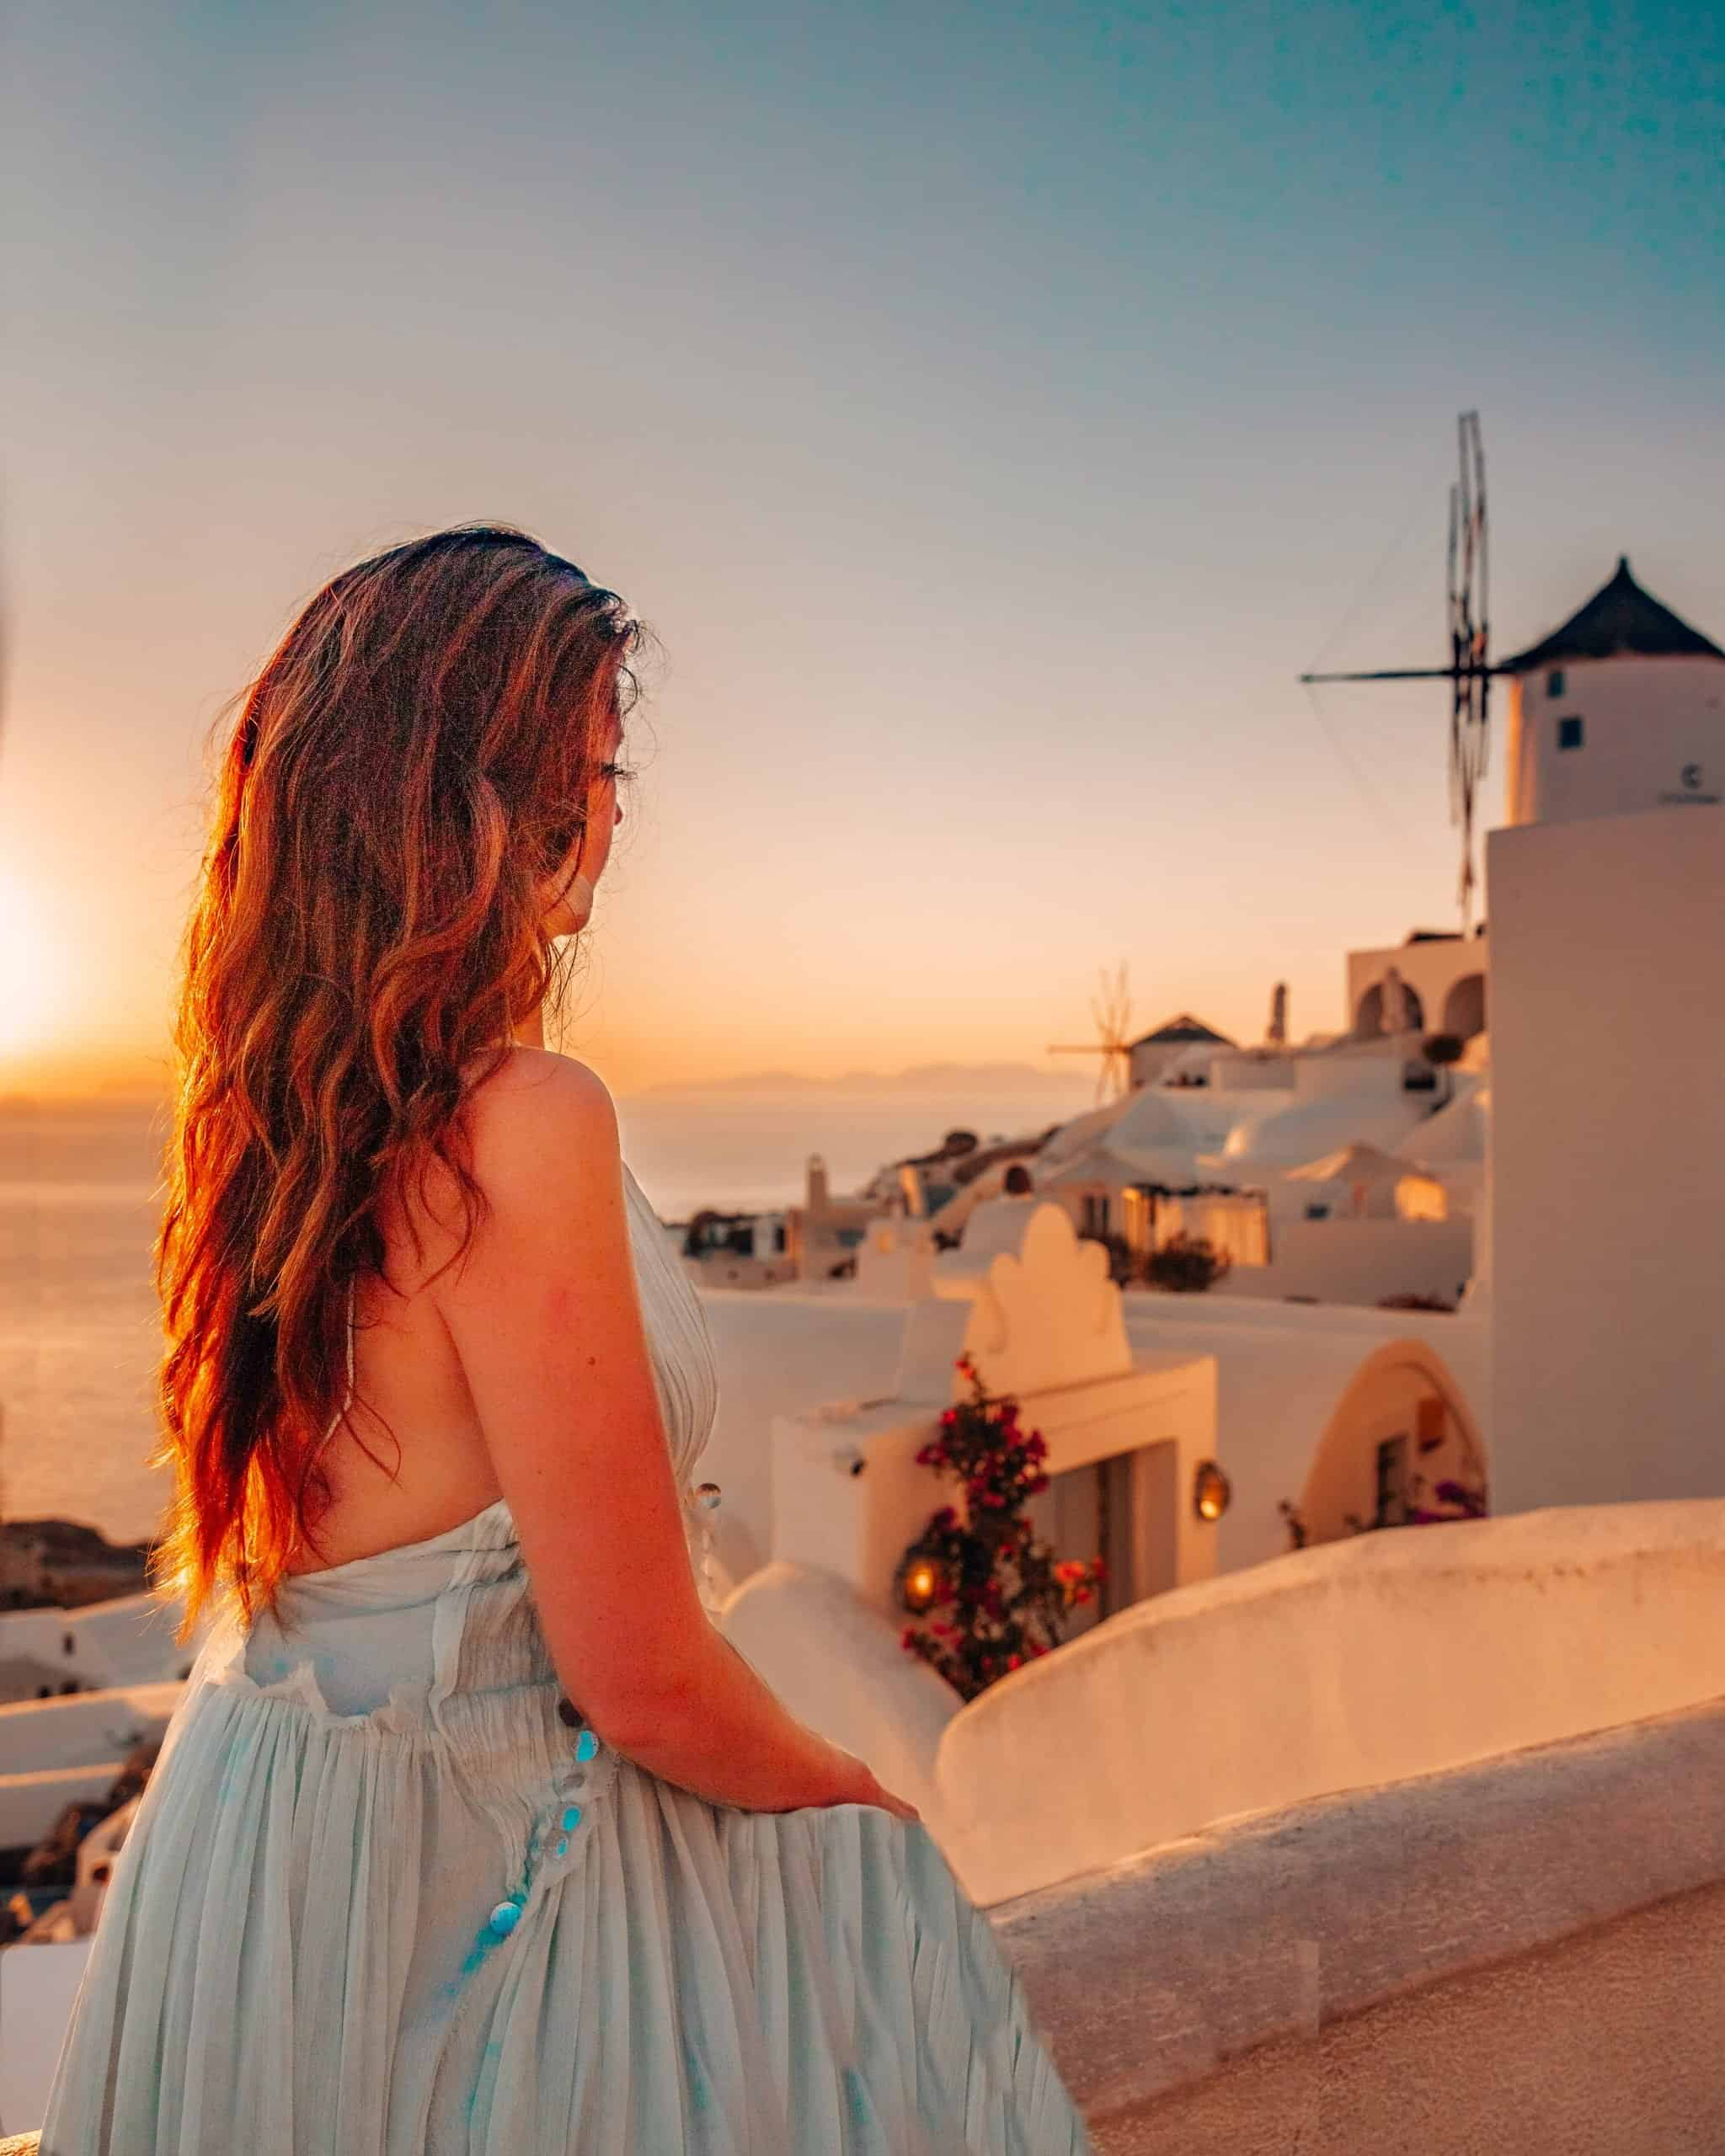 Most Instagrammable Places in Santorini you Can't Miss! From blue dome churches, sunset in Oia, typical Santorini-style houses, to the pink church, this post reveals the top 15 Instagram Spots in Santorini and includes tips on how to get there, how to avoid crowds, and the best time to take photos. | Santorini Instagram | Santorini Travel Guide | Best Locations and Photo Tips | Oia Instagram Spots | Imerovigli Instagram Spots | Oia Sunset | Santorini Greece Photography | Santorini house